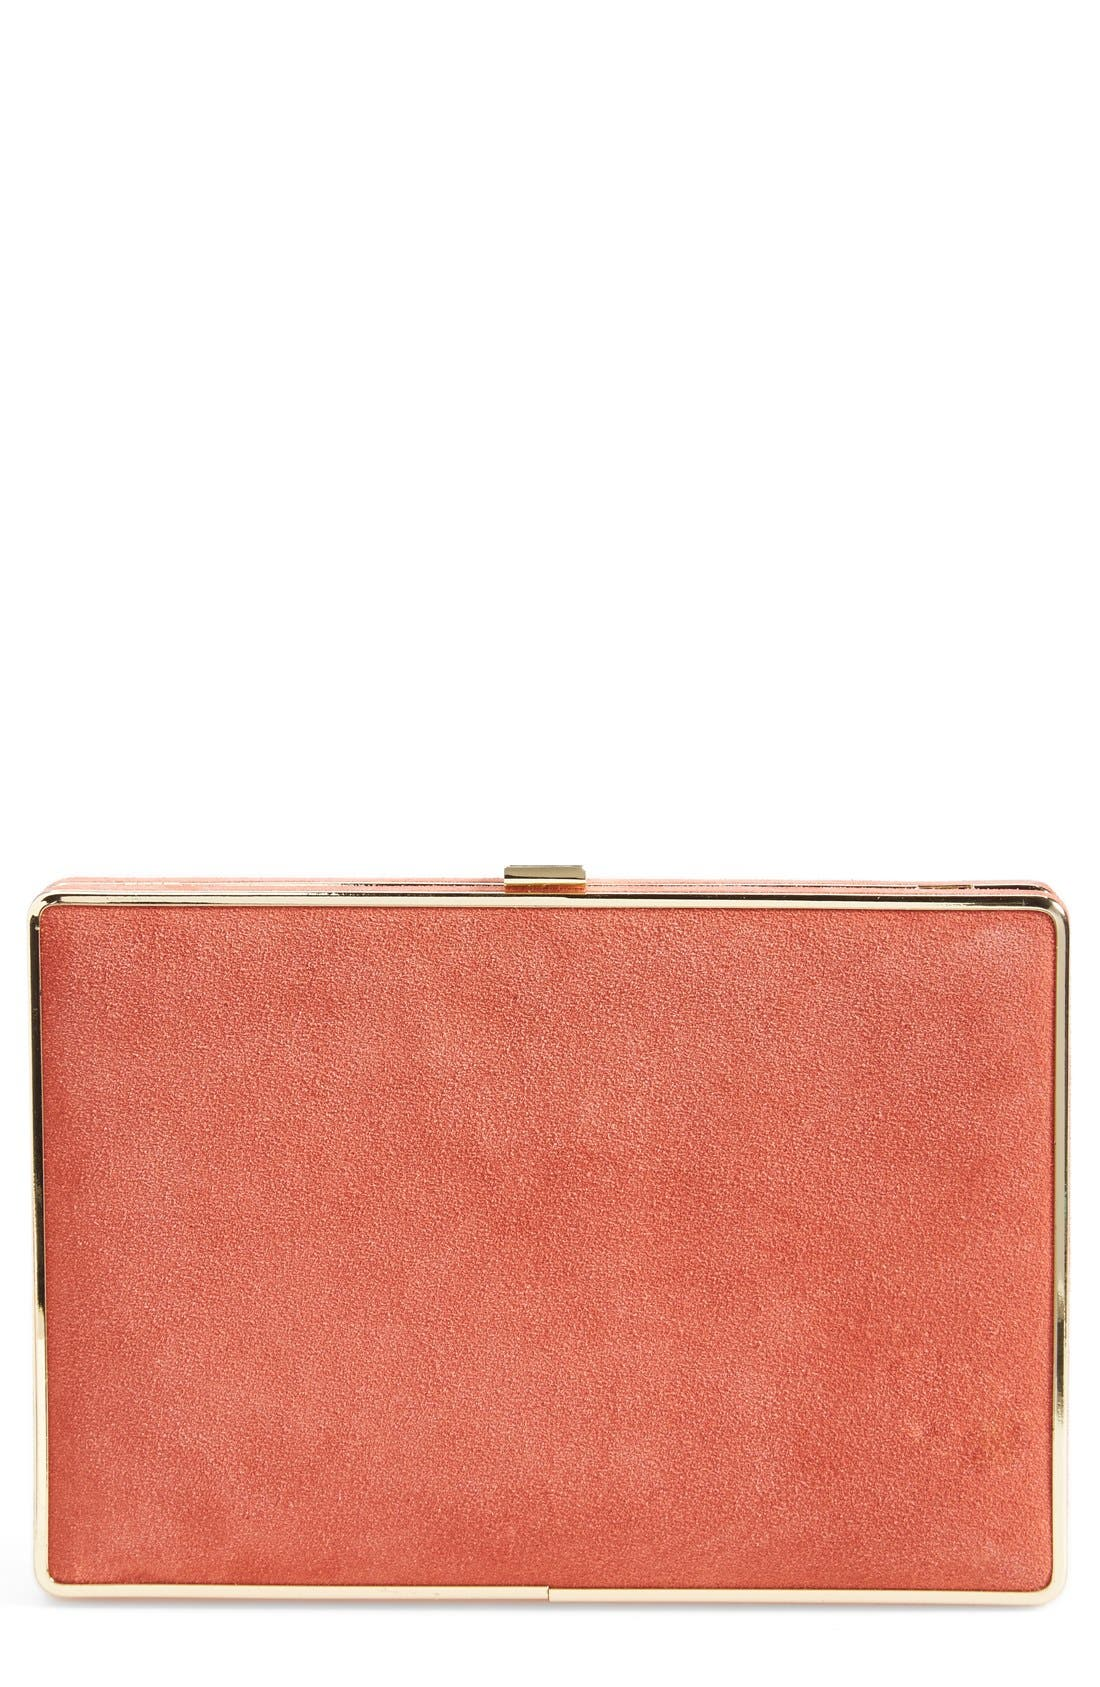 Suede Box Minaudiere,                         Main,                         color, Poppy